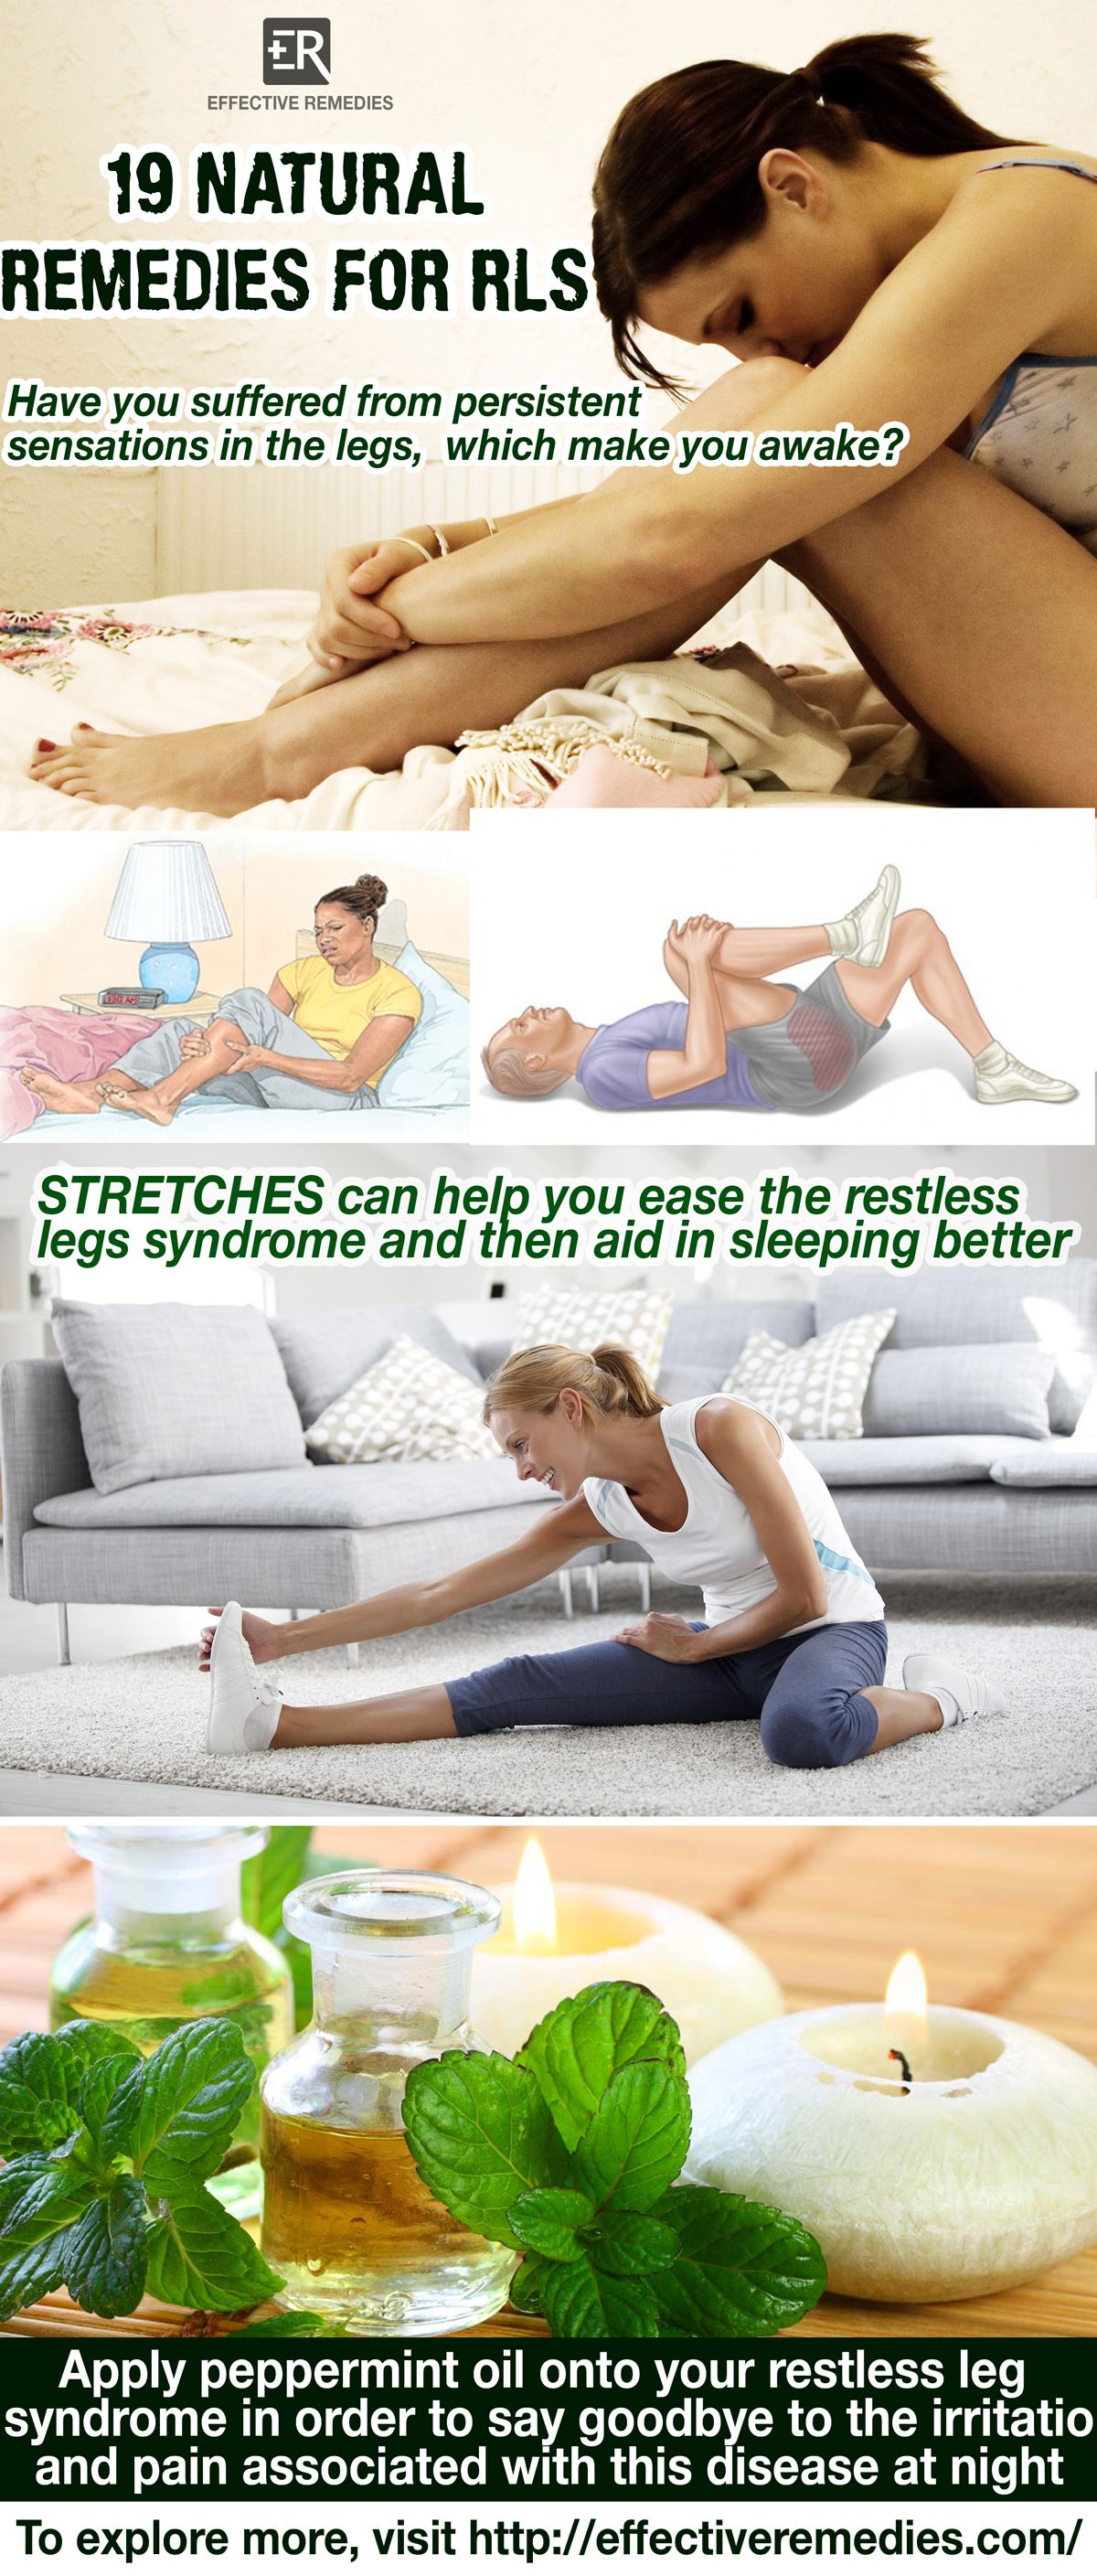 Top 7 Natural Home Remedies For Restless Leg Syndrome In Adults Restless Leg Remedies Restless Leg Syndrome Natural Home Remedies